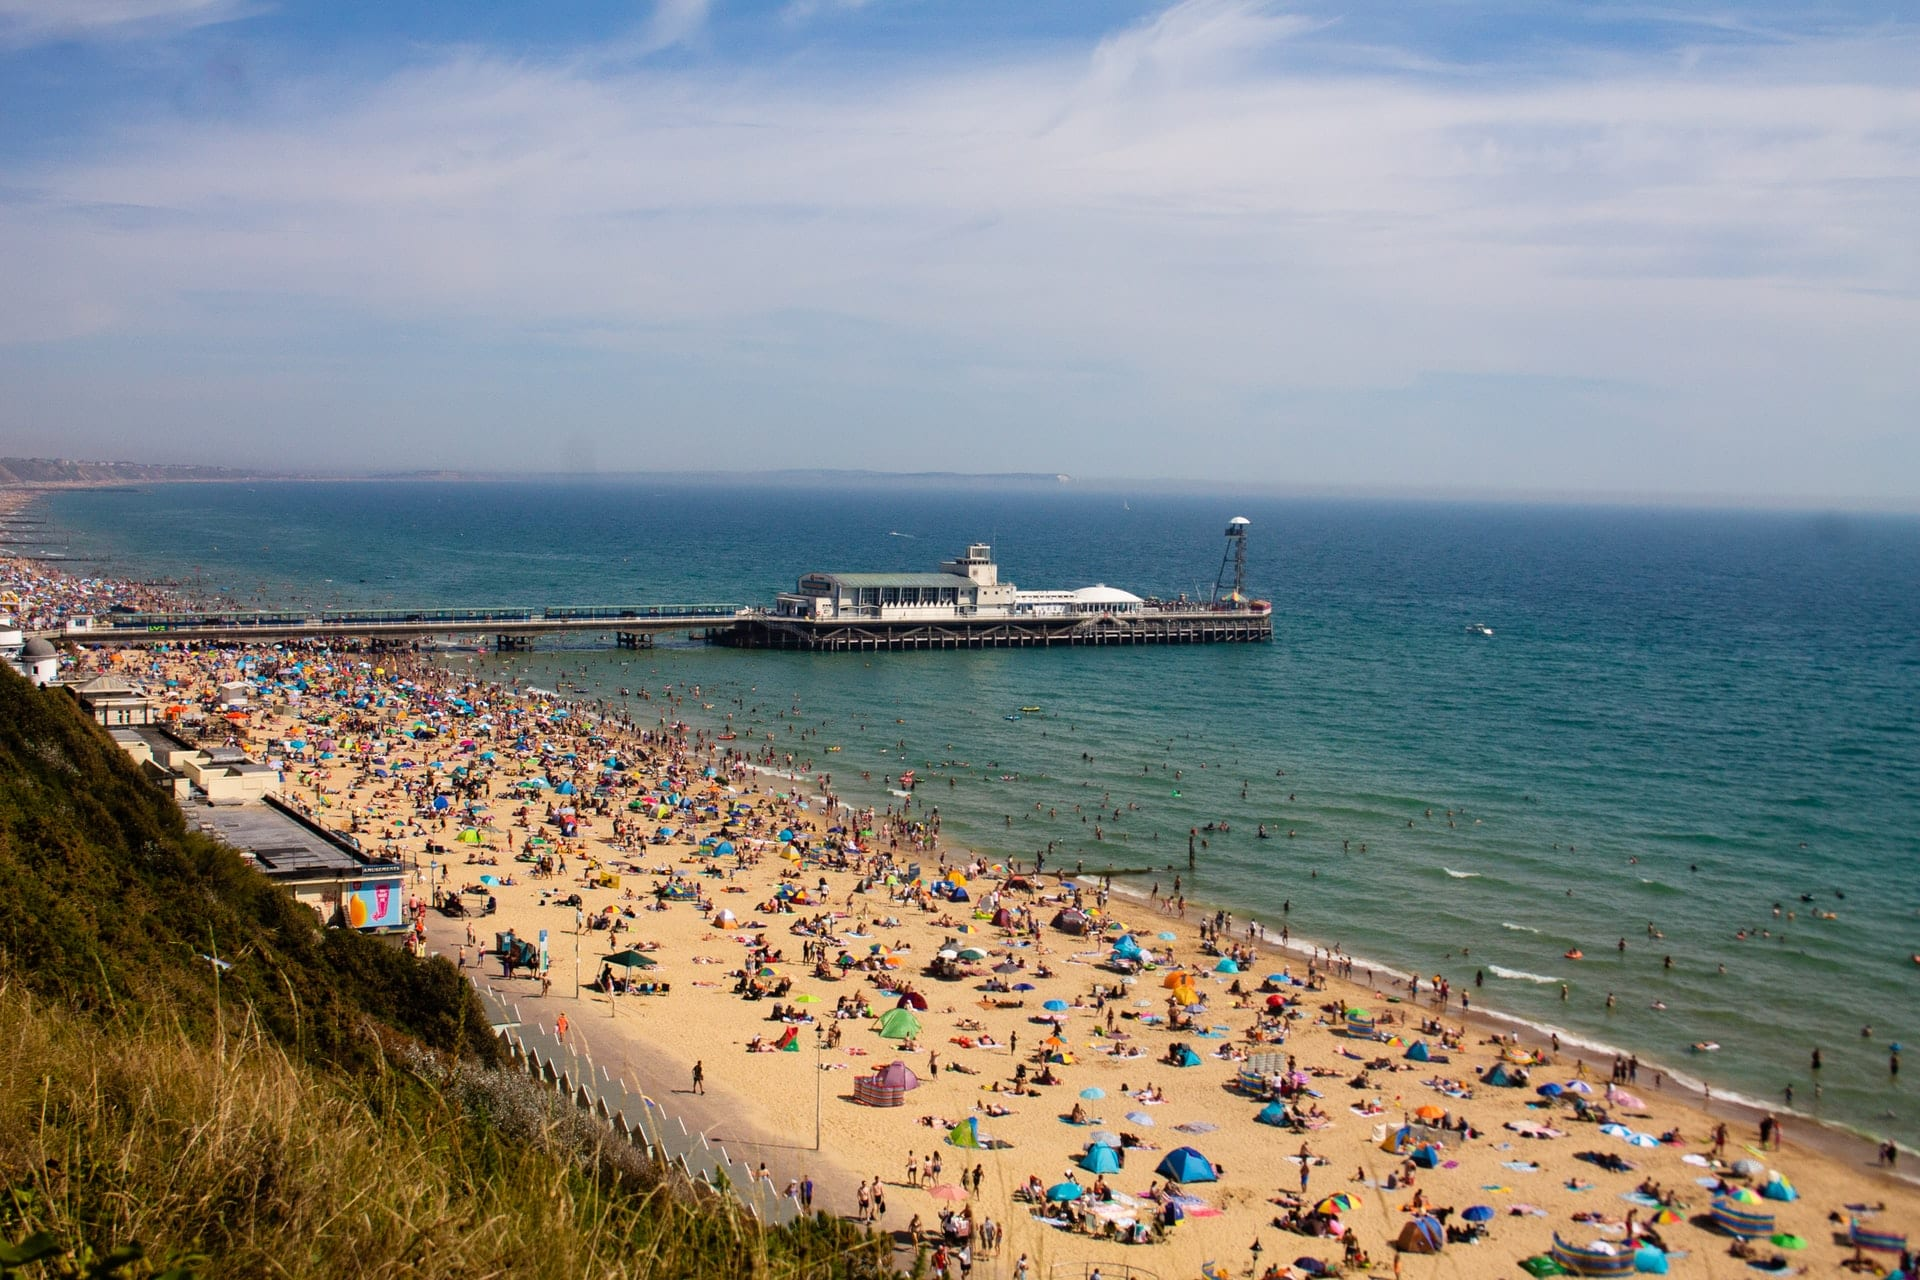 tourists-sunbathing-on-sandy-beach-by-pier-and-sea-in-bournemouth-england